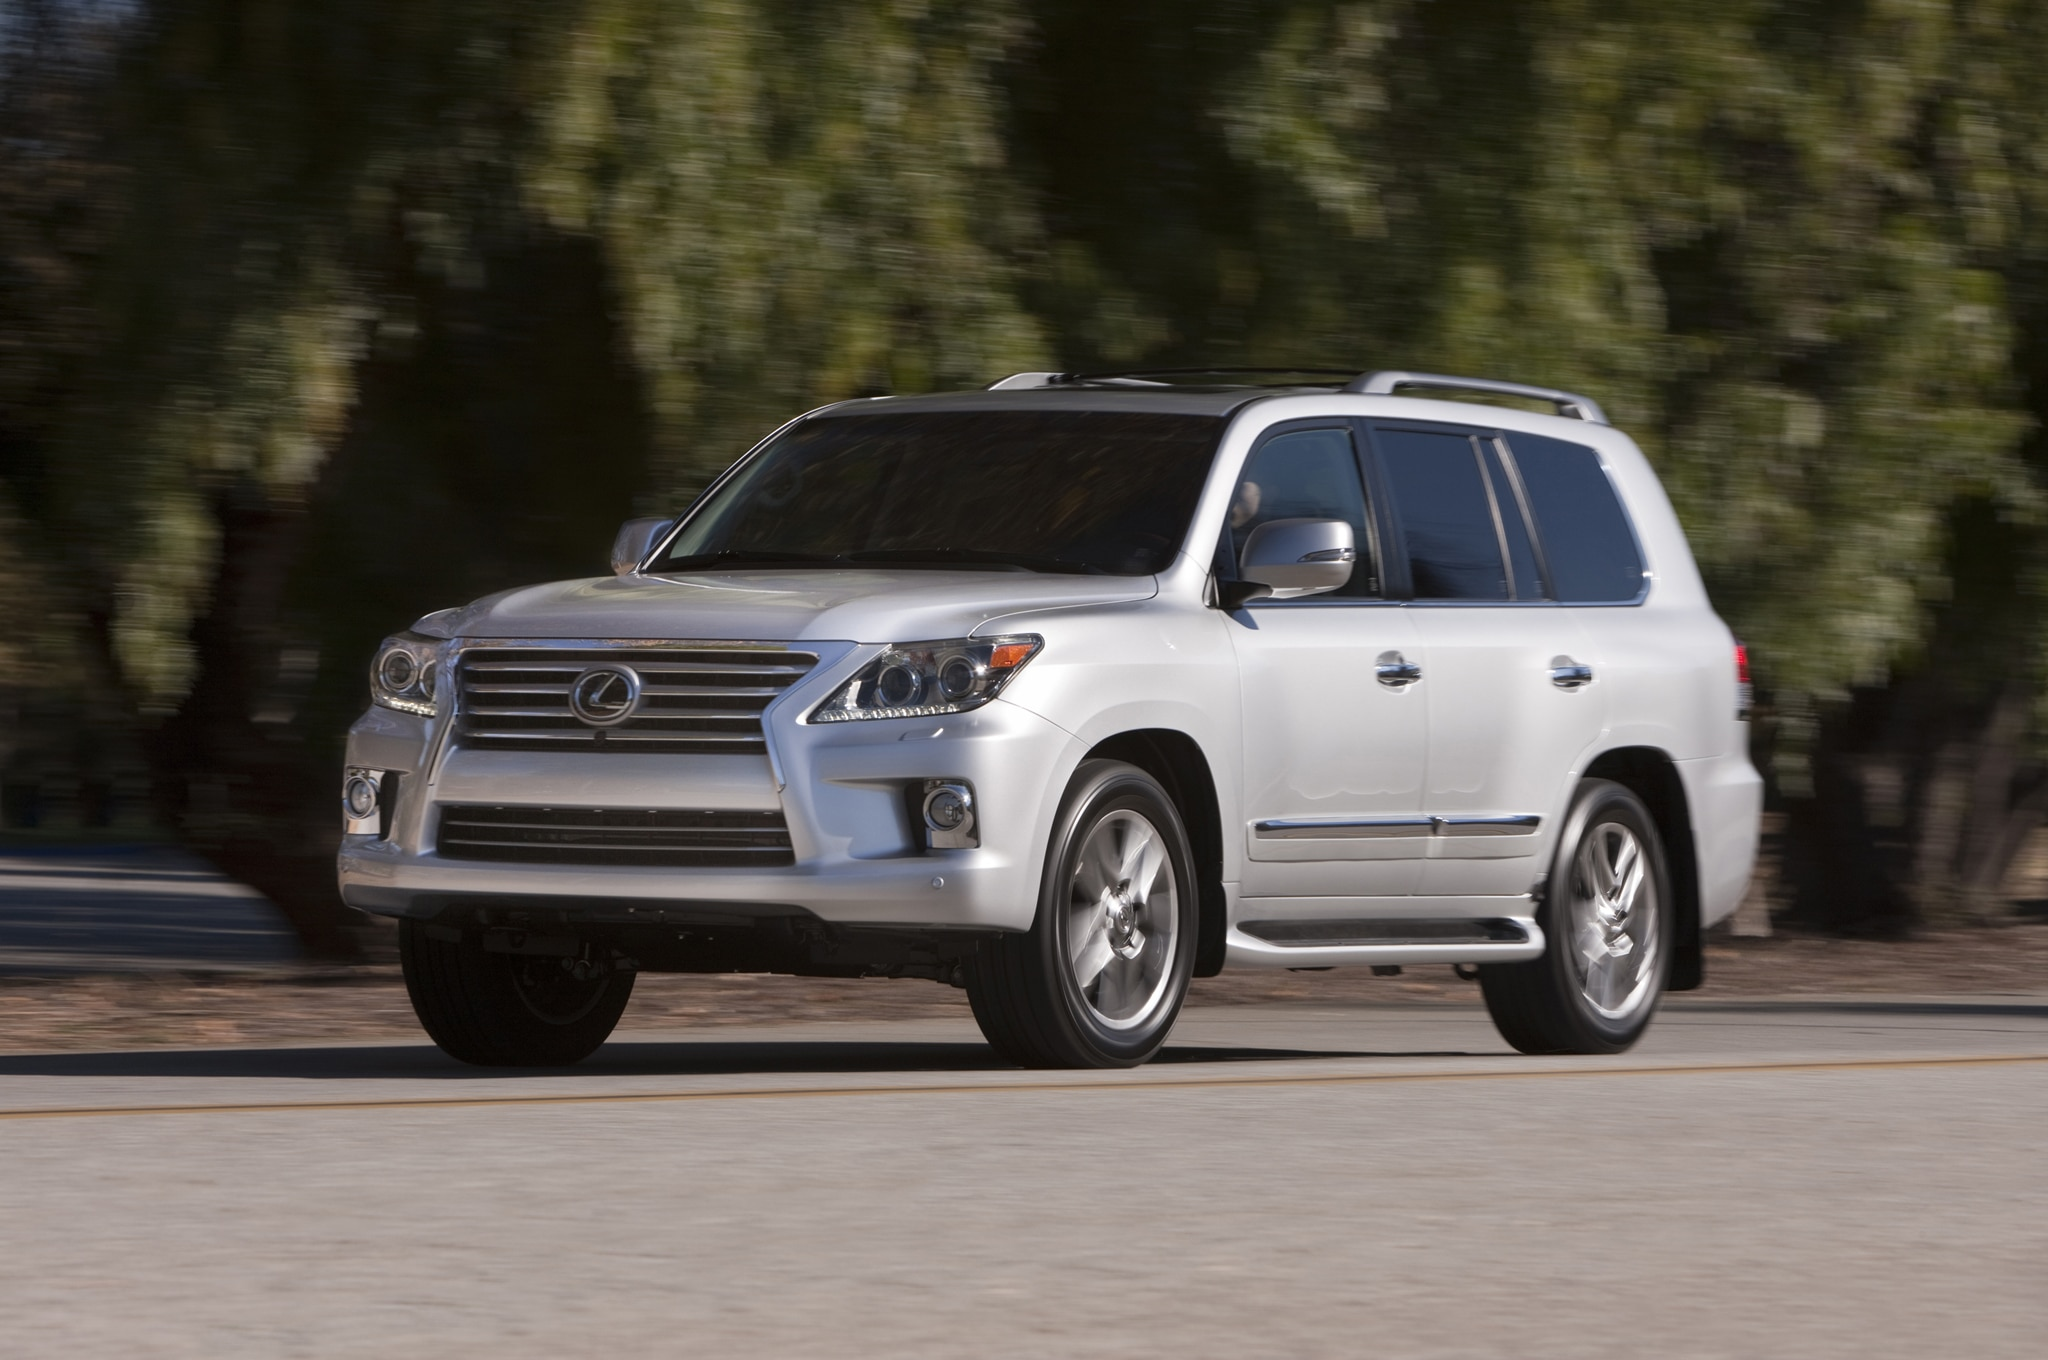 2015 Lexus LX 570 Front Three Quarter In Motion 02